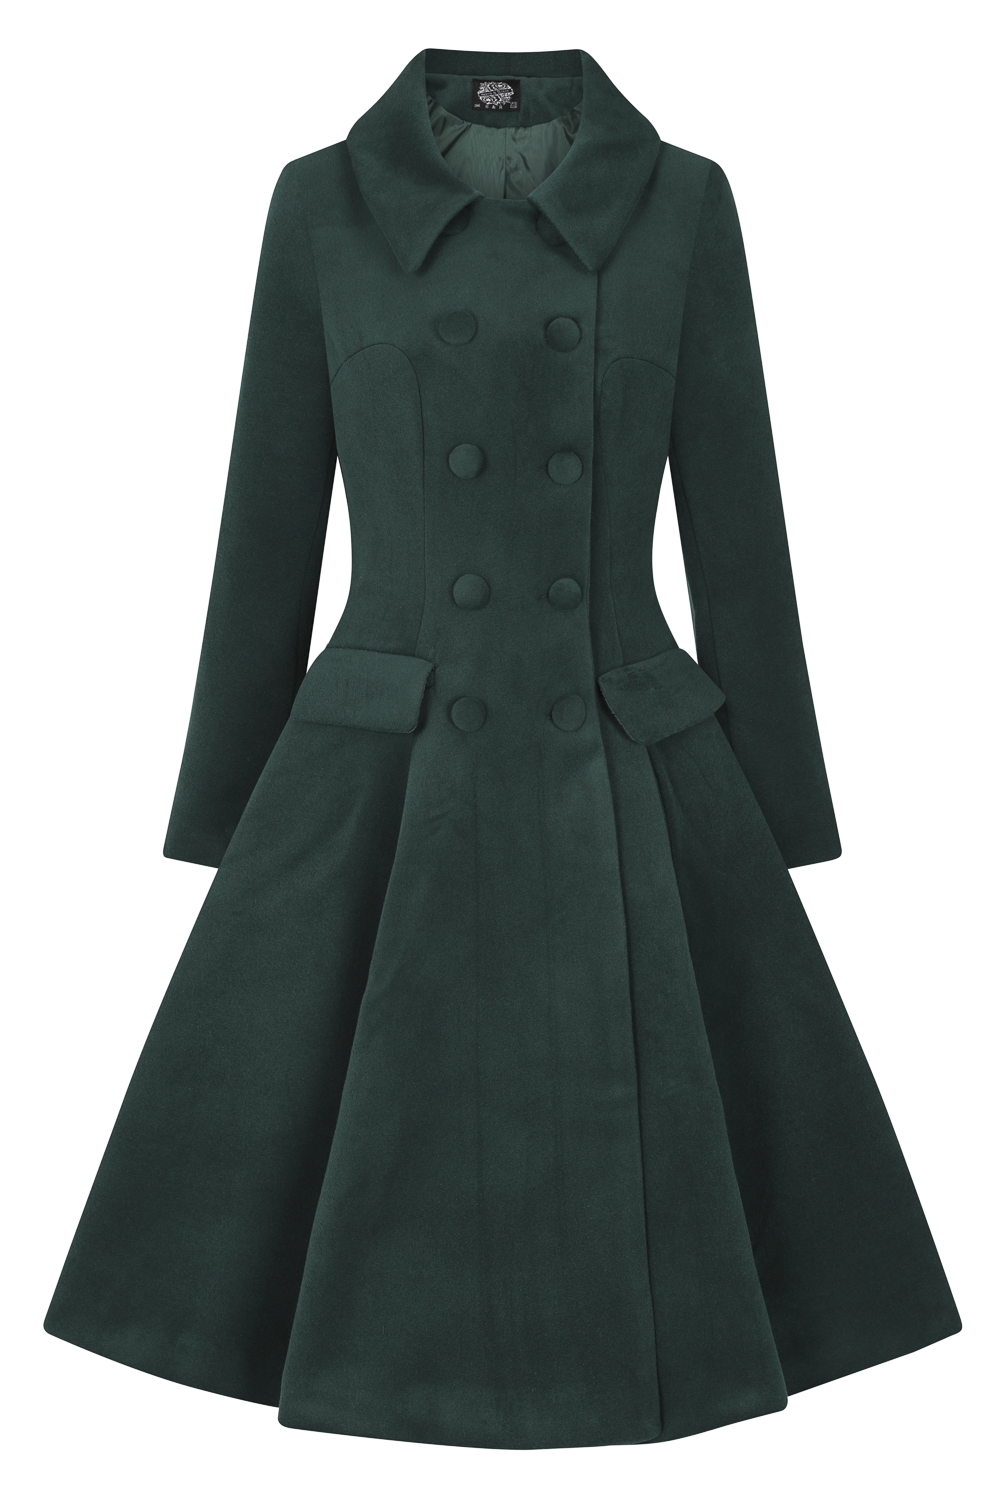 Hearts And Roses Evelyn Green Swing Coat Bettie Vintage